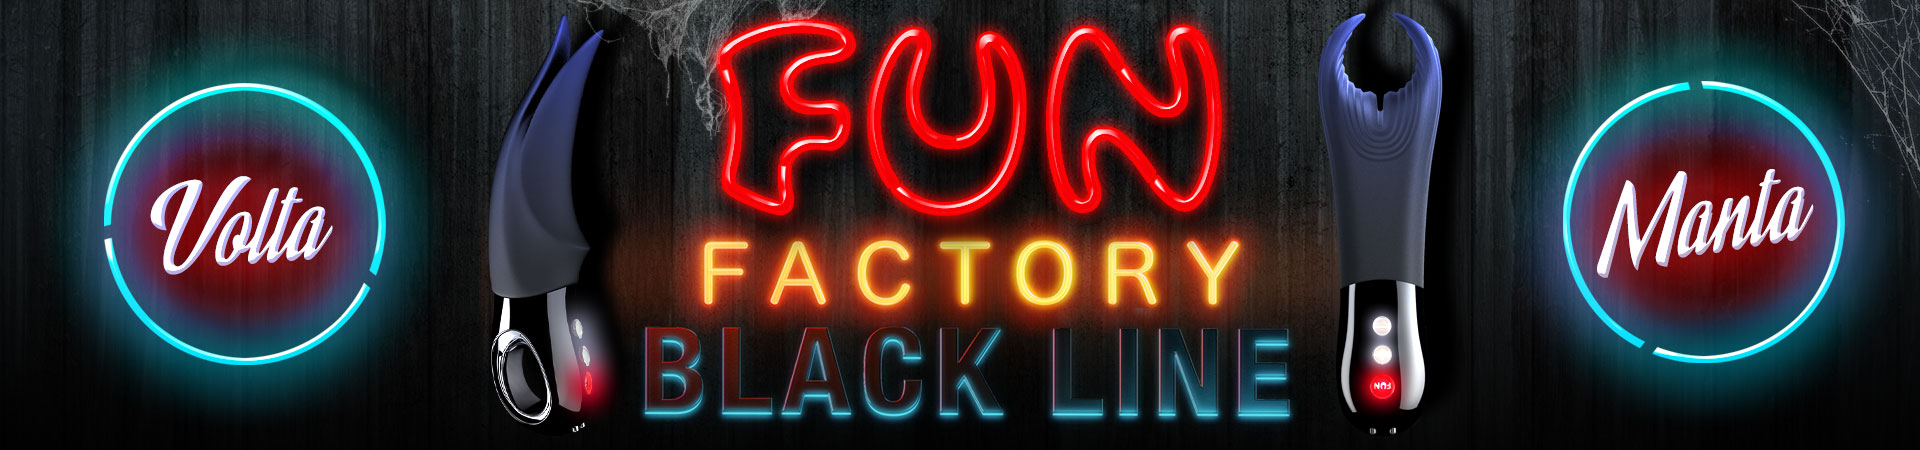 FUN FACTORY MANTA & VOLTA - New to the Fun Factory Iconic Black Line - Manta and Volta